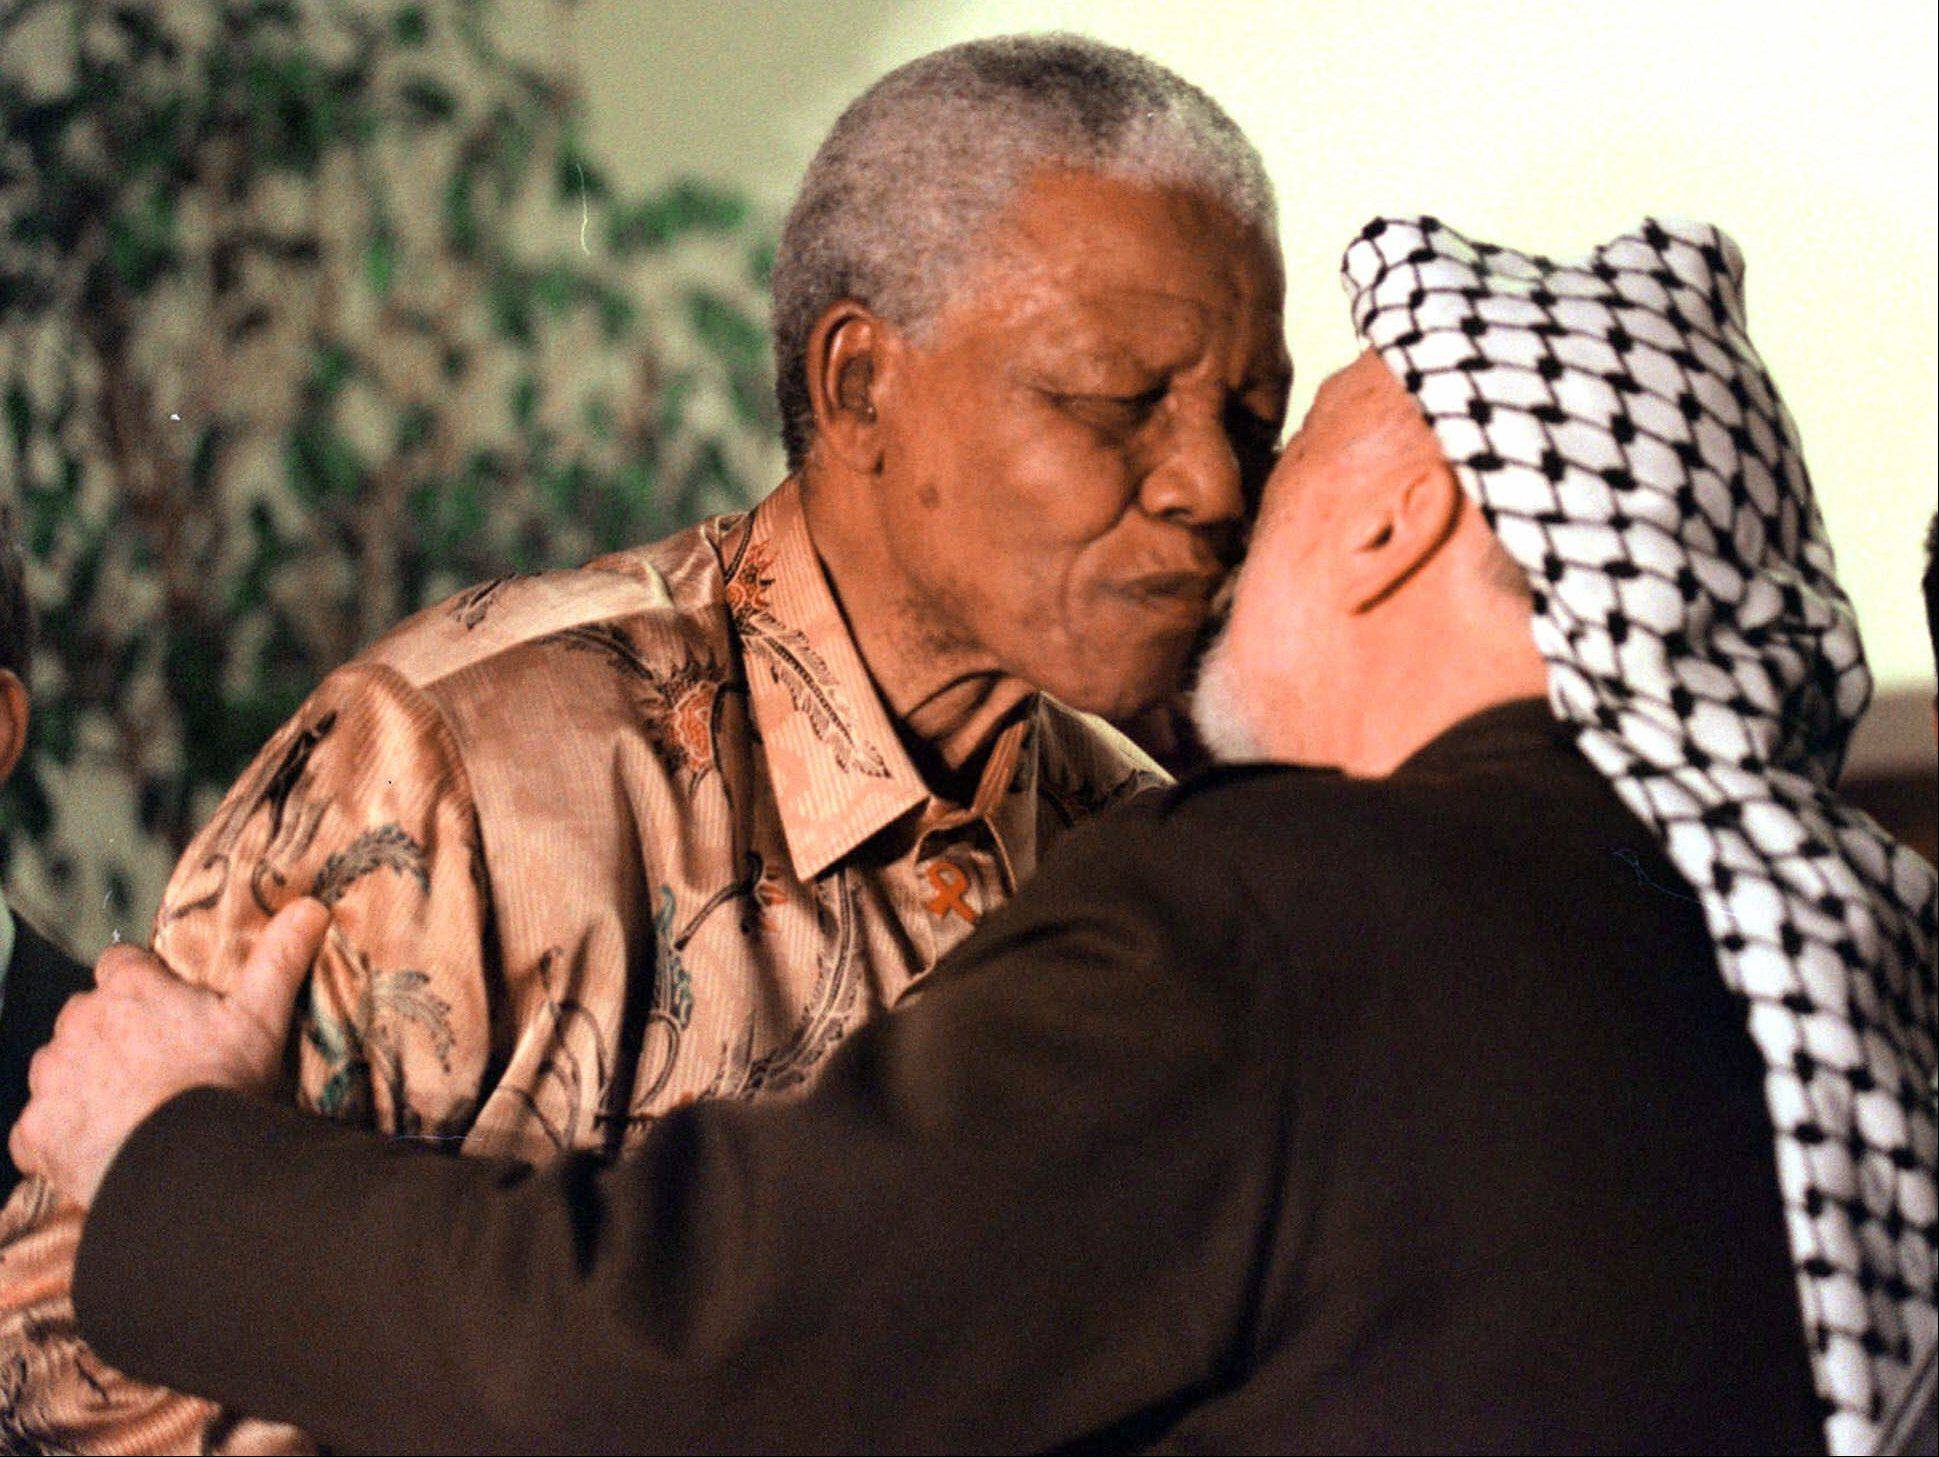 Former South African President Nelson Mandela, left, greets Palestinian leader Yasser Arafat in Johannesburg, South Africa, Thursday, August 3, 2000.